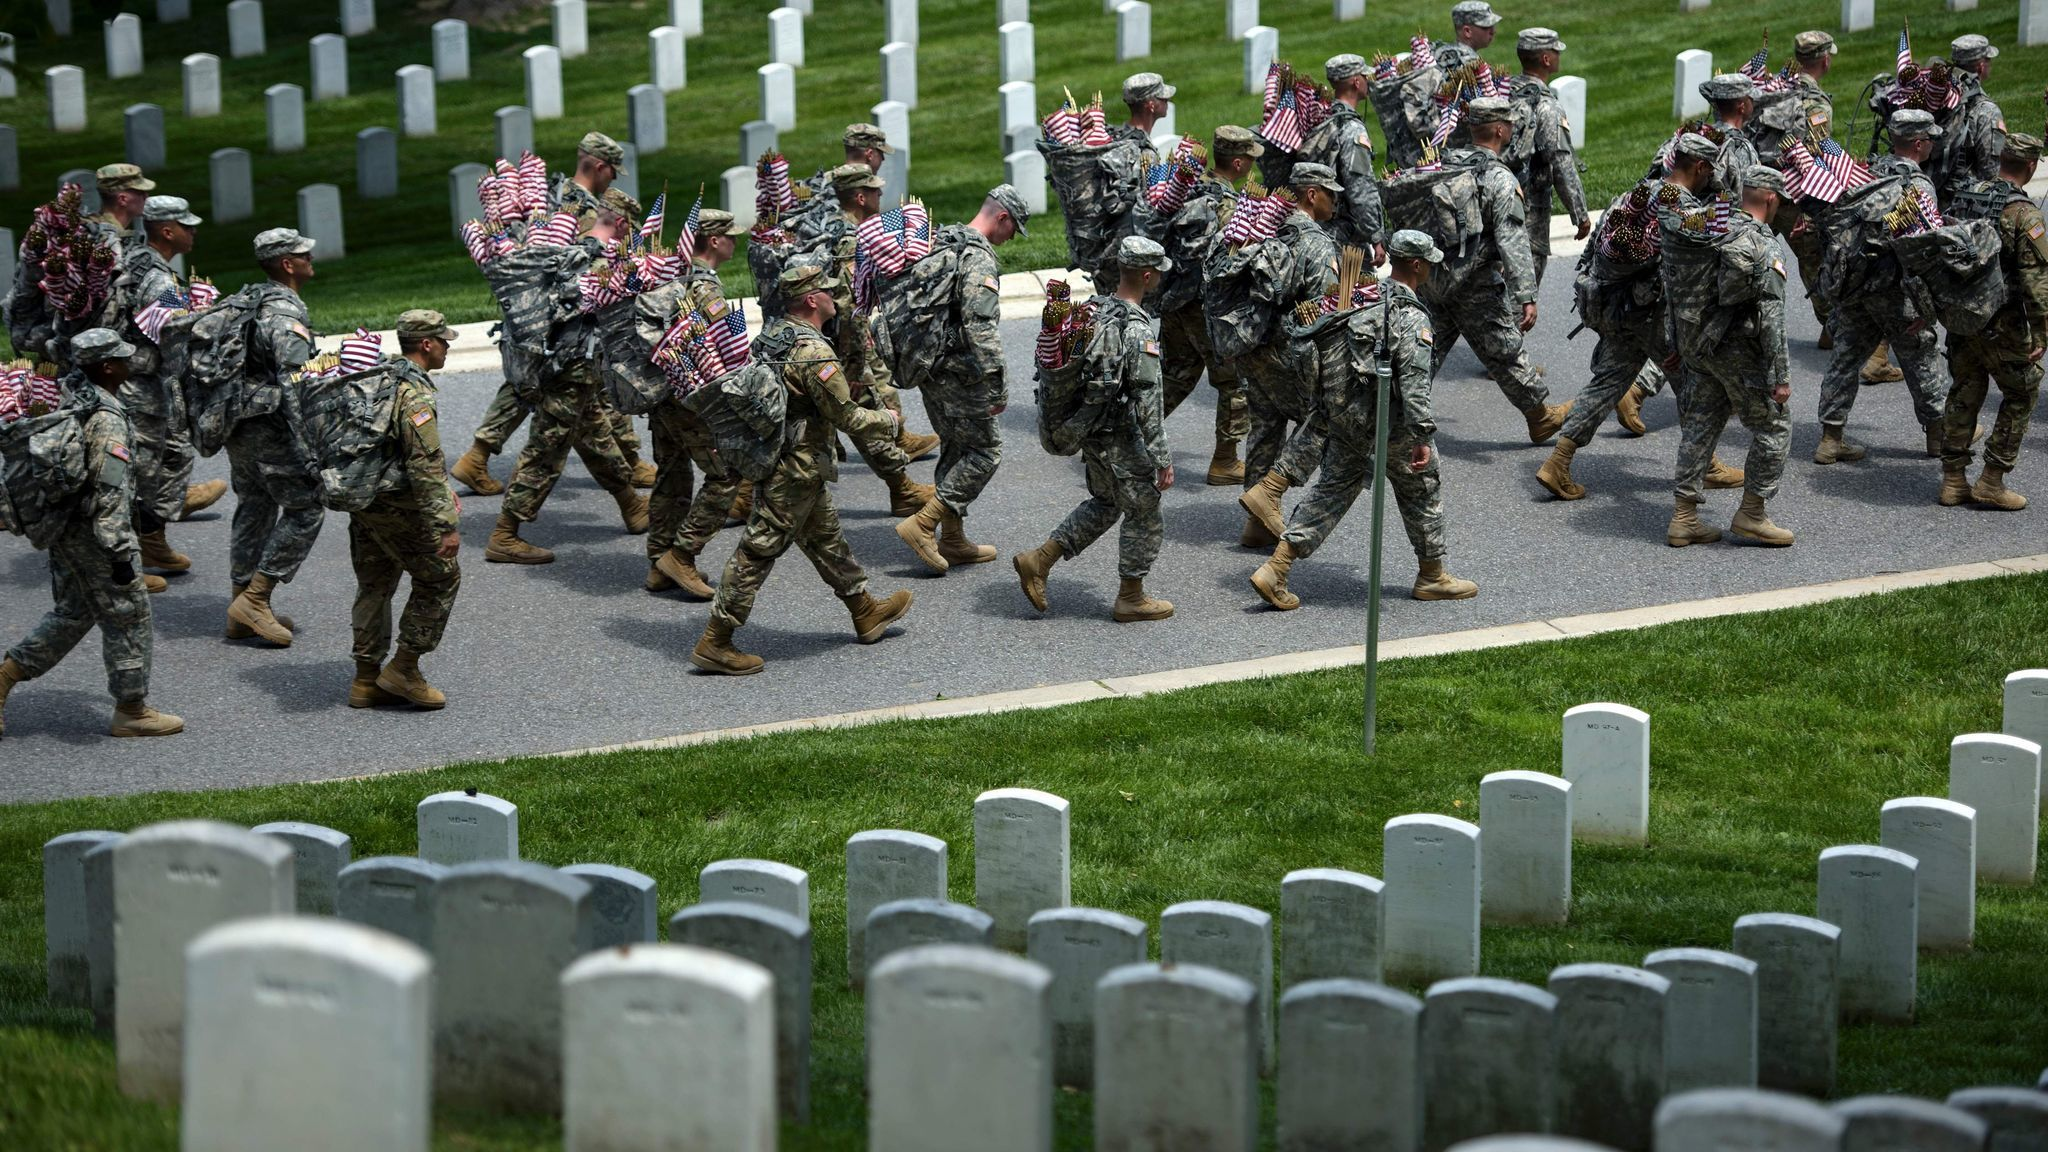 U.S. Army soldiers last year marched with miniature American flags that were placed at graves in Arlington National Cemetery in Virginia.